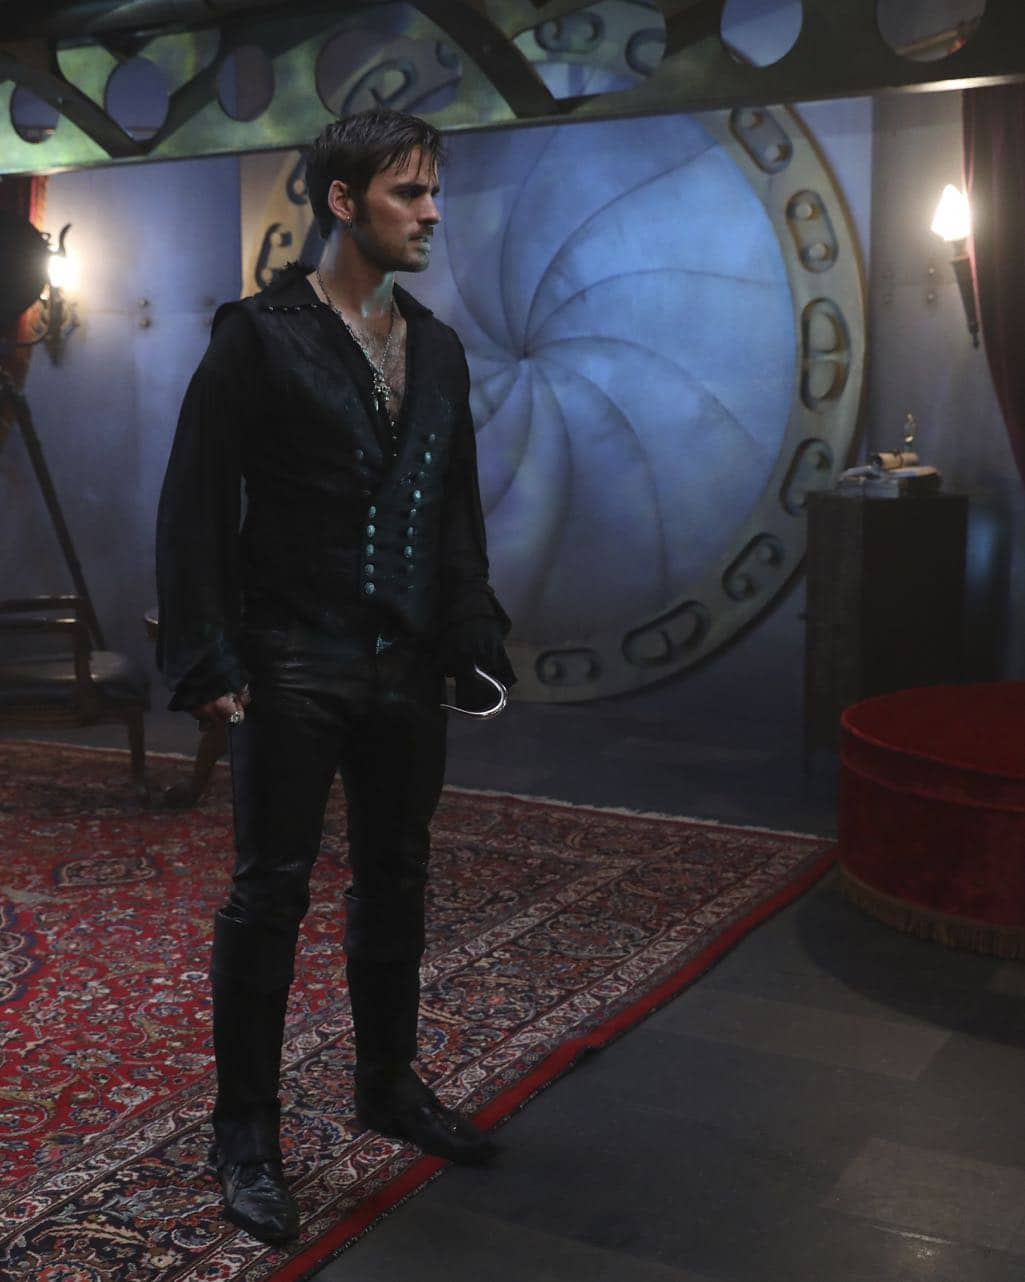 """ONCE UPON A TIME - """"Dark Waters"""" - Emma tries to convince Aladdin to work with Jasmine to help Agrabah, while Regina teams up with Snow and David to free Archie from Zelena. The Evil Queen sows suspicion between Henry and Hook, even as Mr. Gold reminds her of his most important lesson. Meanwhile, in the past, Hook finds himself kidnapped by the mysterious Captain Nemo and held captive inside his legendary submarine, the Nautilus, on """"Once Upon a Time,"""" SUNDAY, OCTOBER 30 (8:00-9:00 p.m. EDT), on the ABC Television Network. (ABC/Jack Rowand) COLIN O'DONOGHUE"""